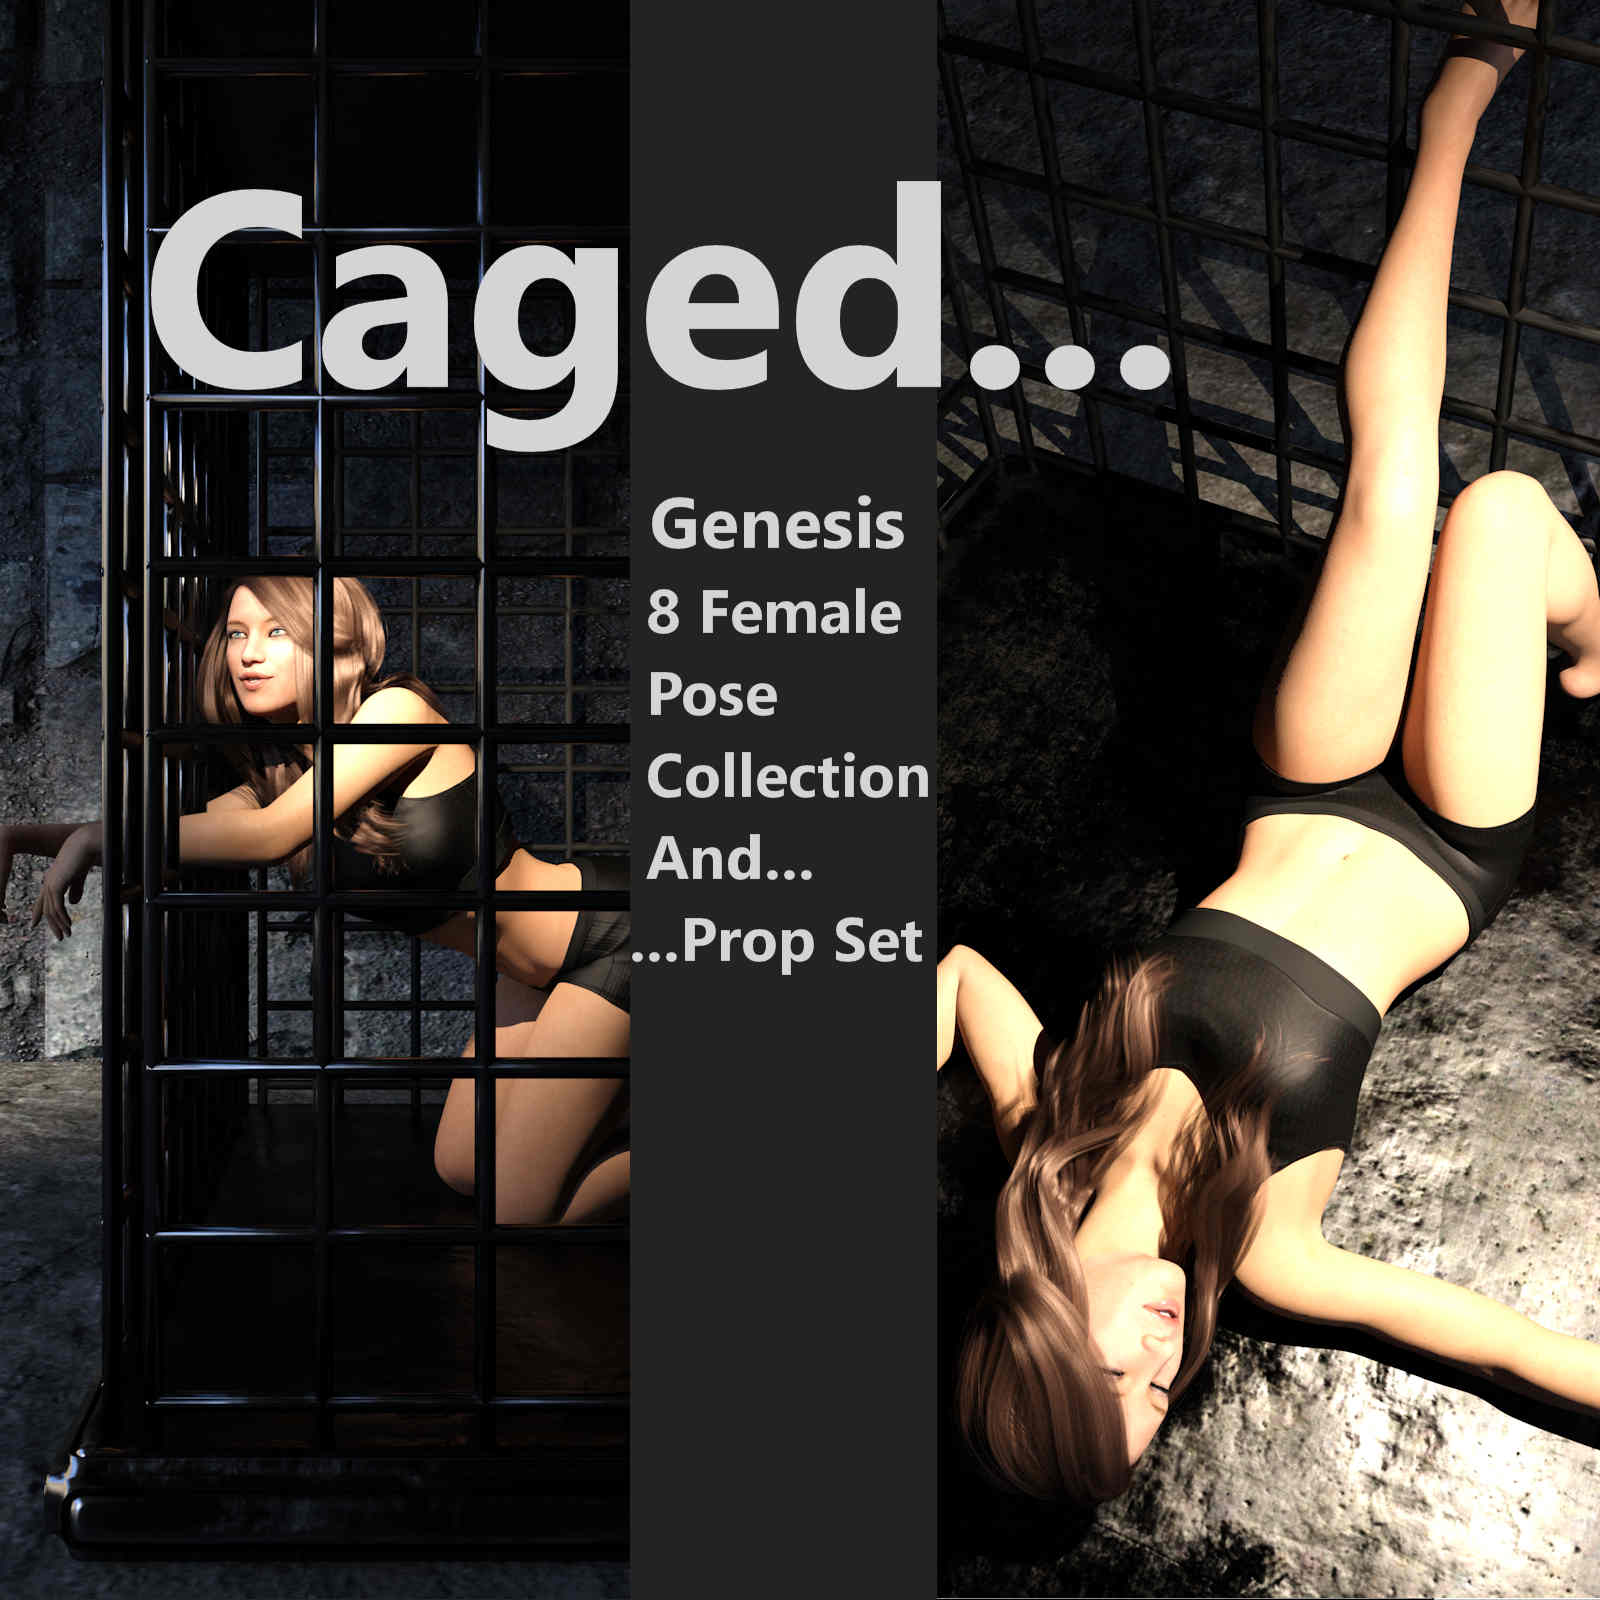 Caged Prop and Pose Collection for Genesis 8 Female